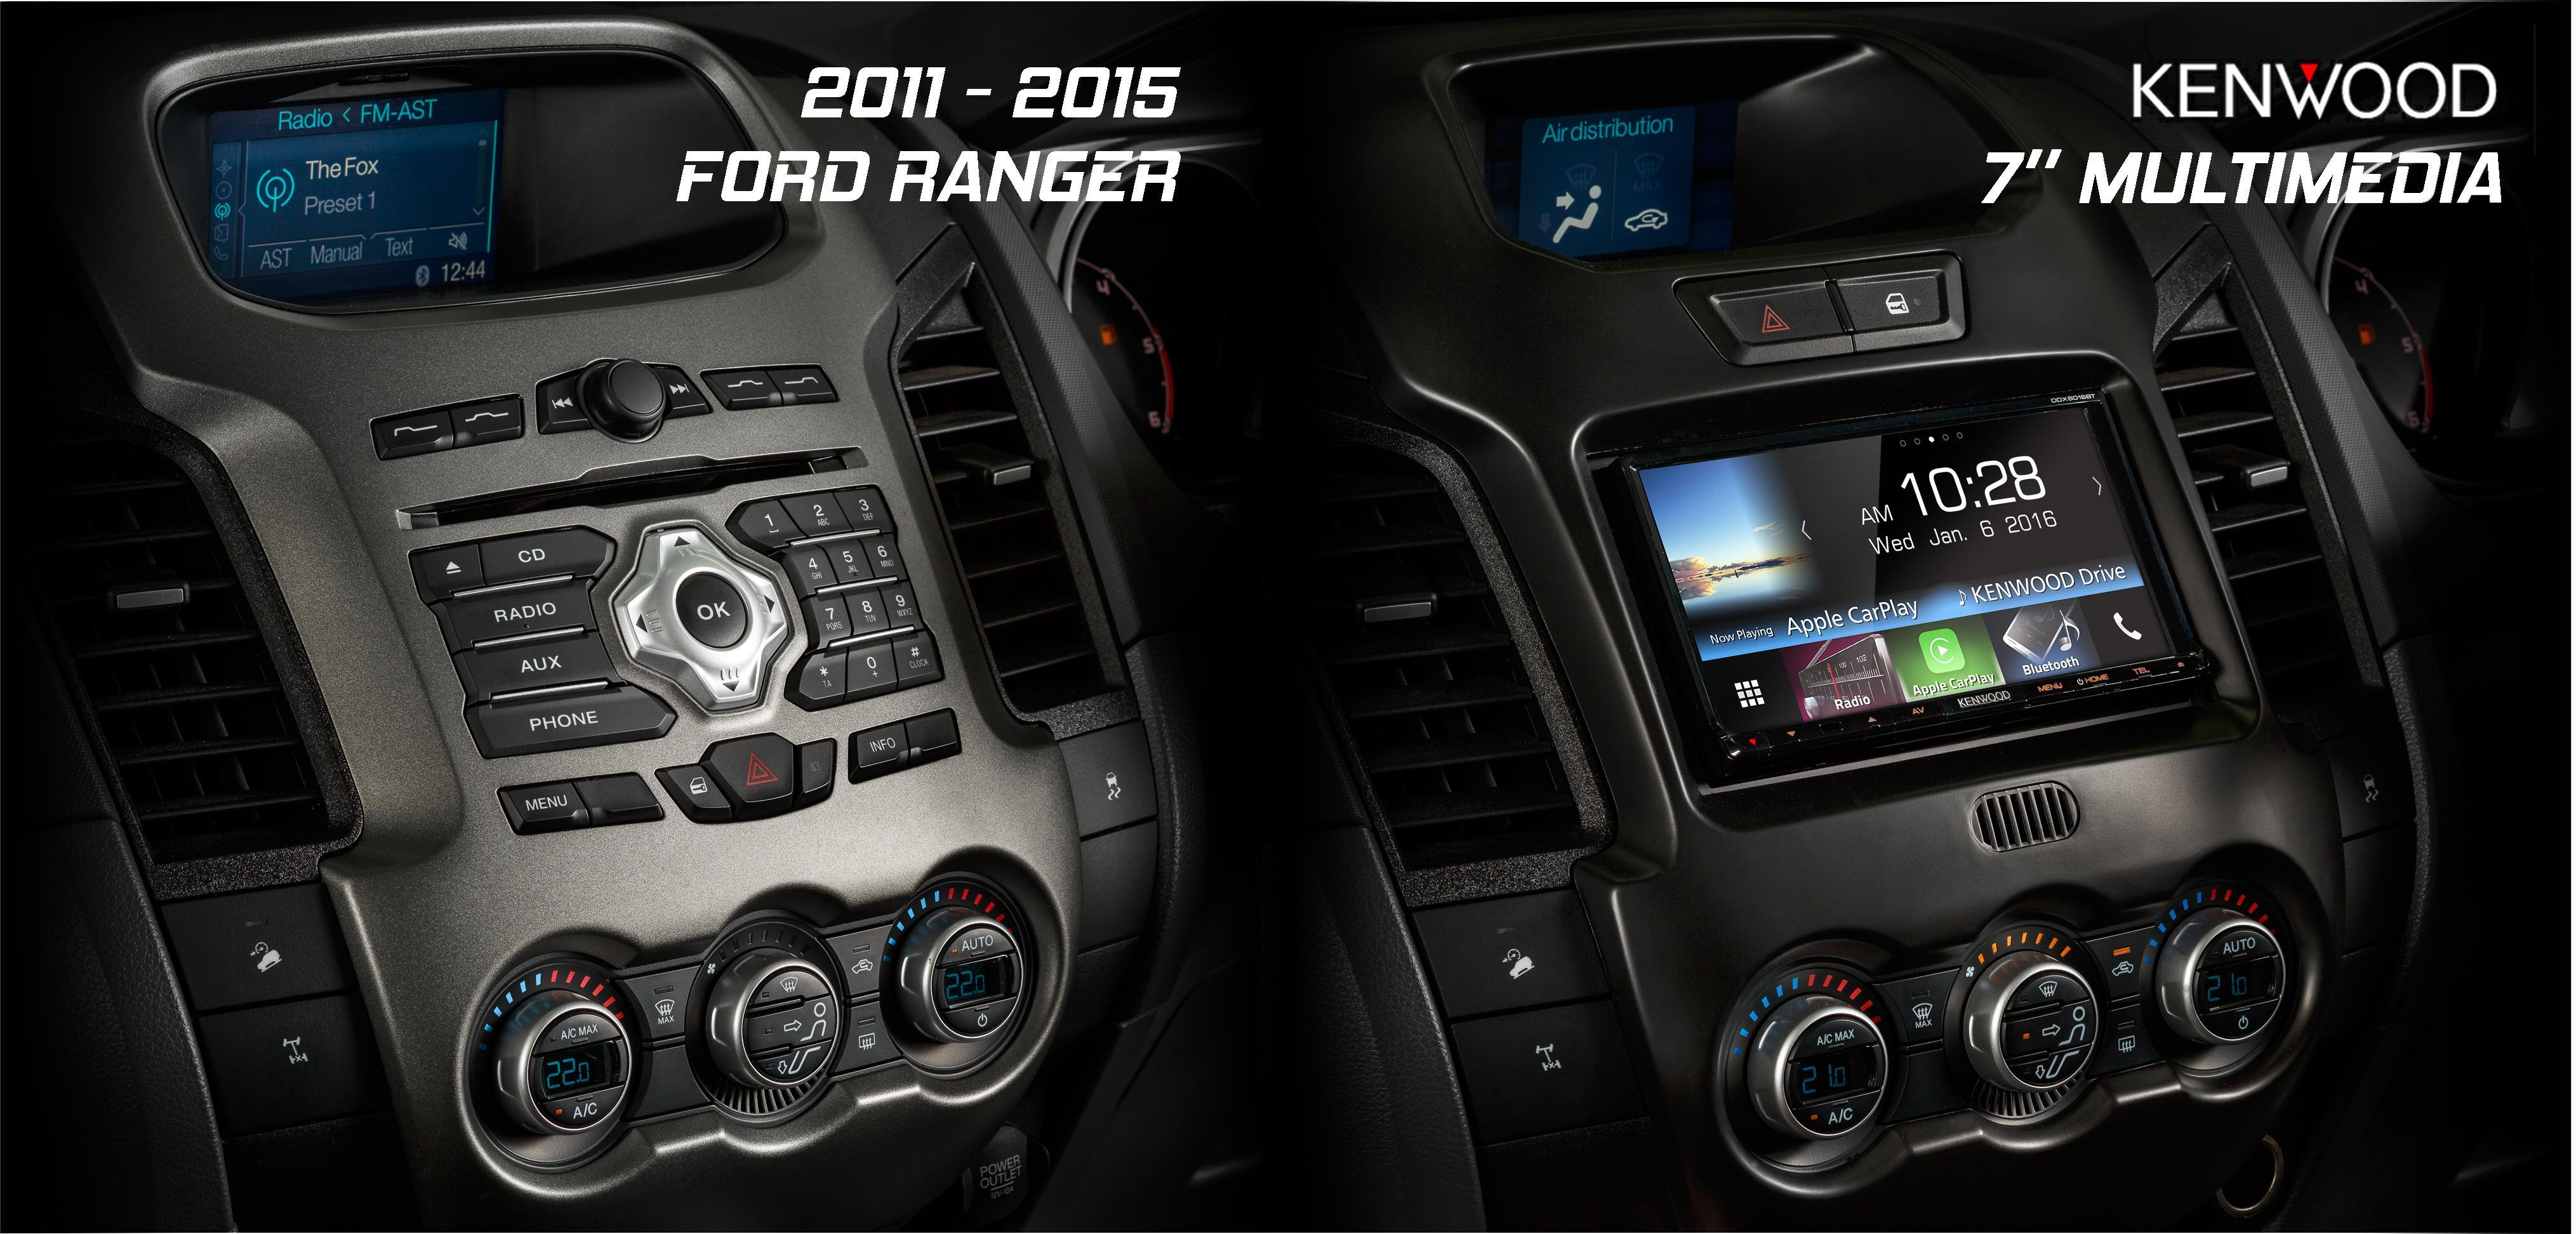 Ford Ranger Px1 Stereo Replacement Sydney Carbon Car